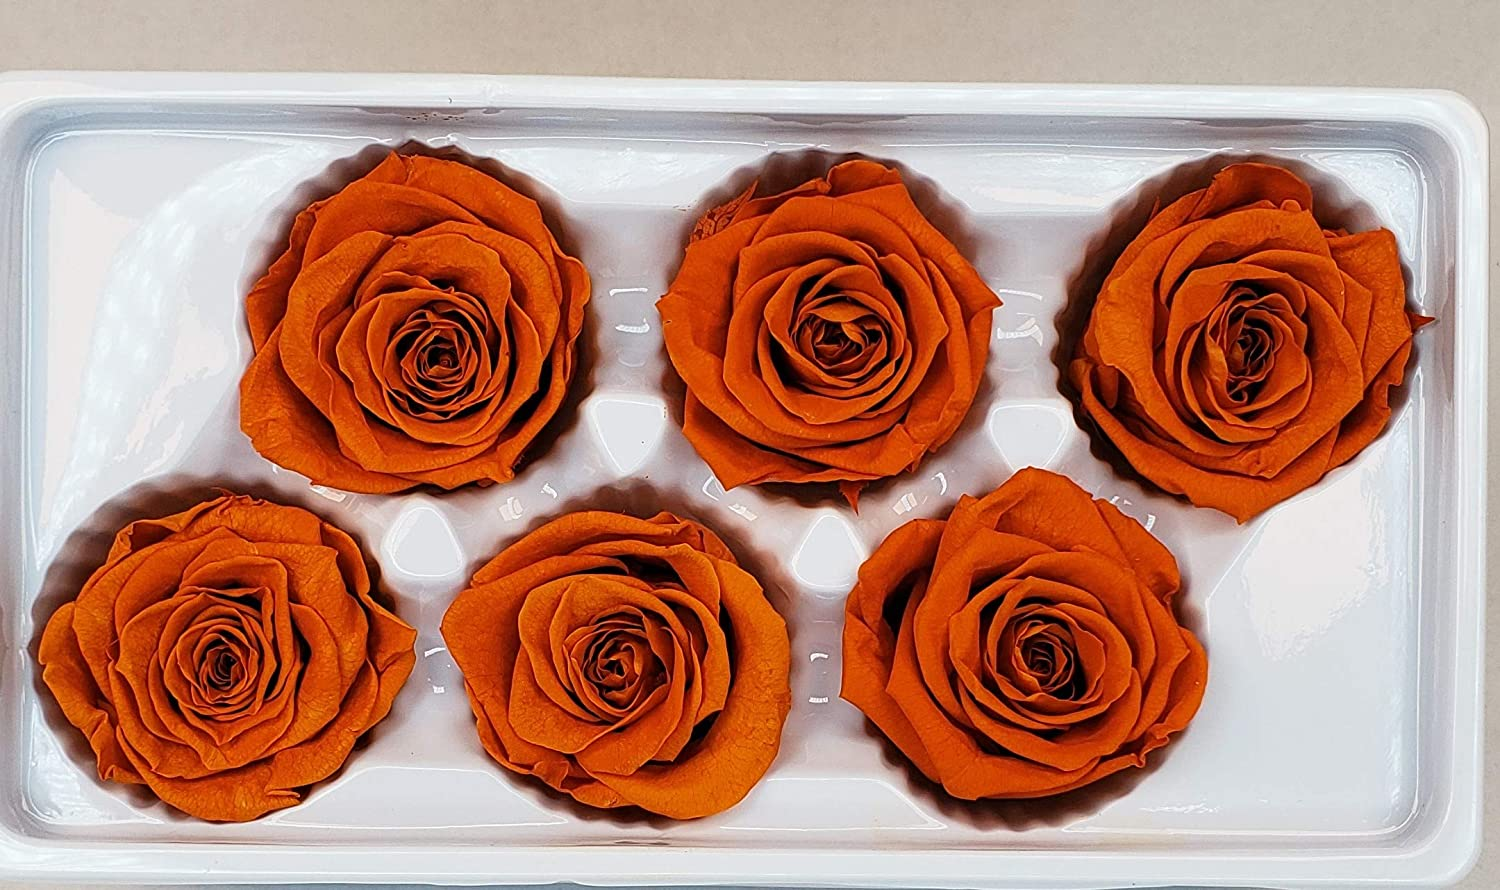 DIY Crafts Orange Perfect Alternative to Artificial /& Dried Flowers Ogis Florist 100/% Real All Natural Premium Preserved 6 Large Heads Roses Last for Months Decoration No Water Needed